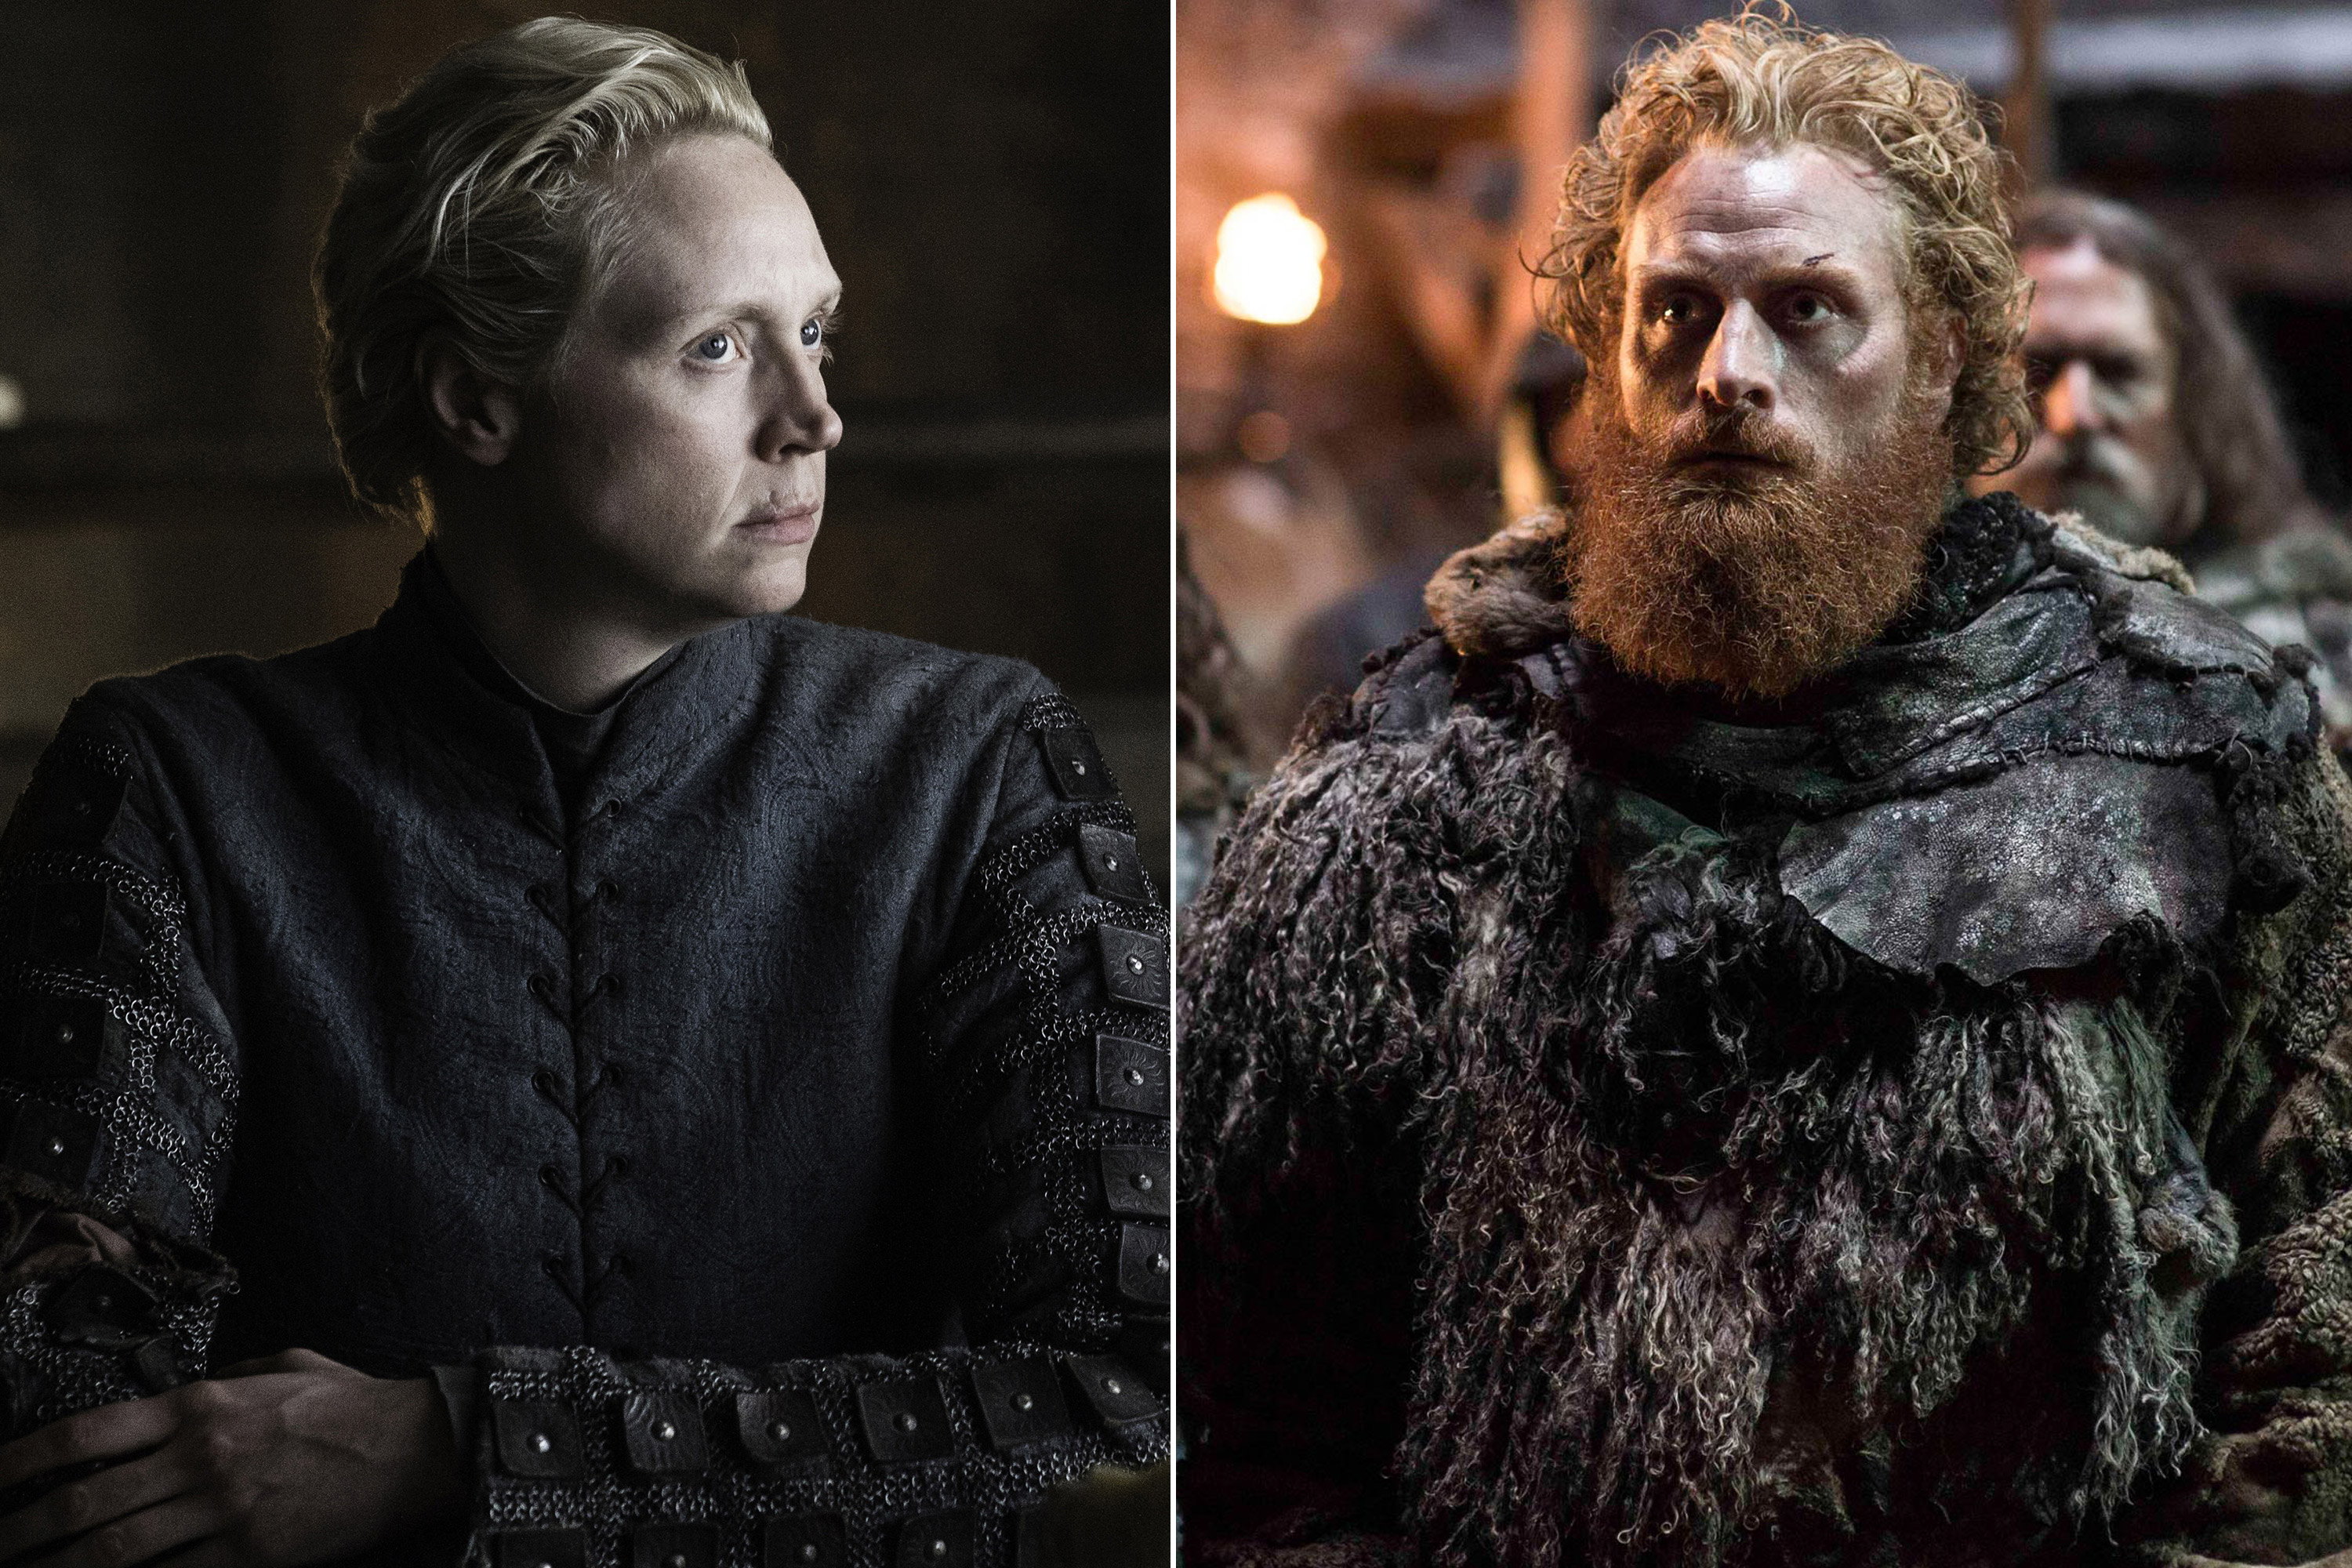 Kristofer Hivju as Tormund Giantsbane and Gwendoline Christie as Brienne of Tarth in Game of Thrones.